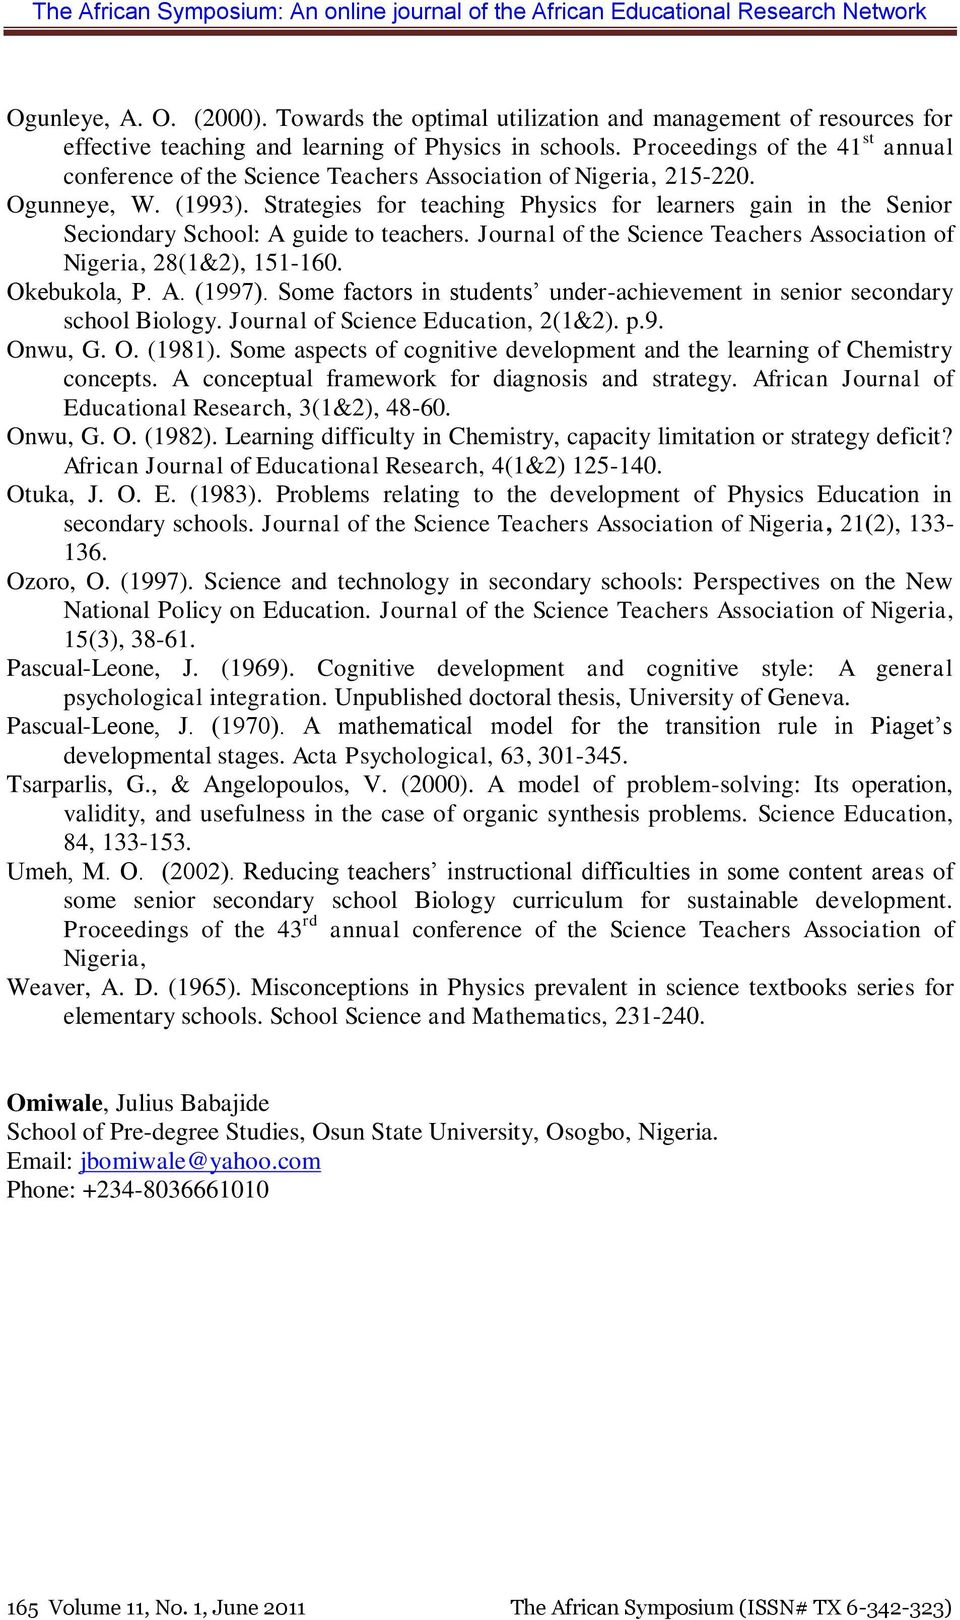 Strategies for teaching Physics for learners gain in the Senior Seciondary School: A guide to teachers. Journal of the Science Teachers Association of Nigeria, 28(1&2), 151-160. Okebukola, P. A. (1997).